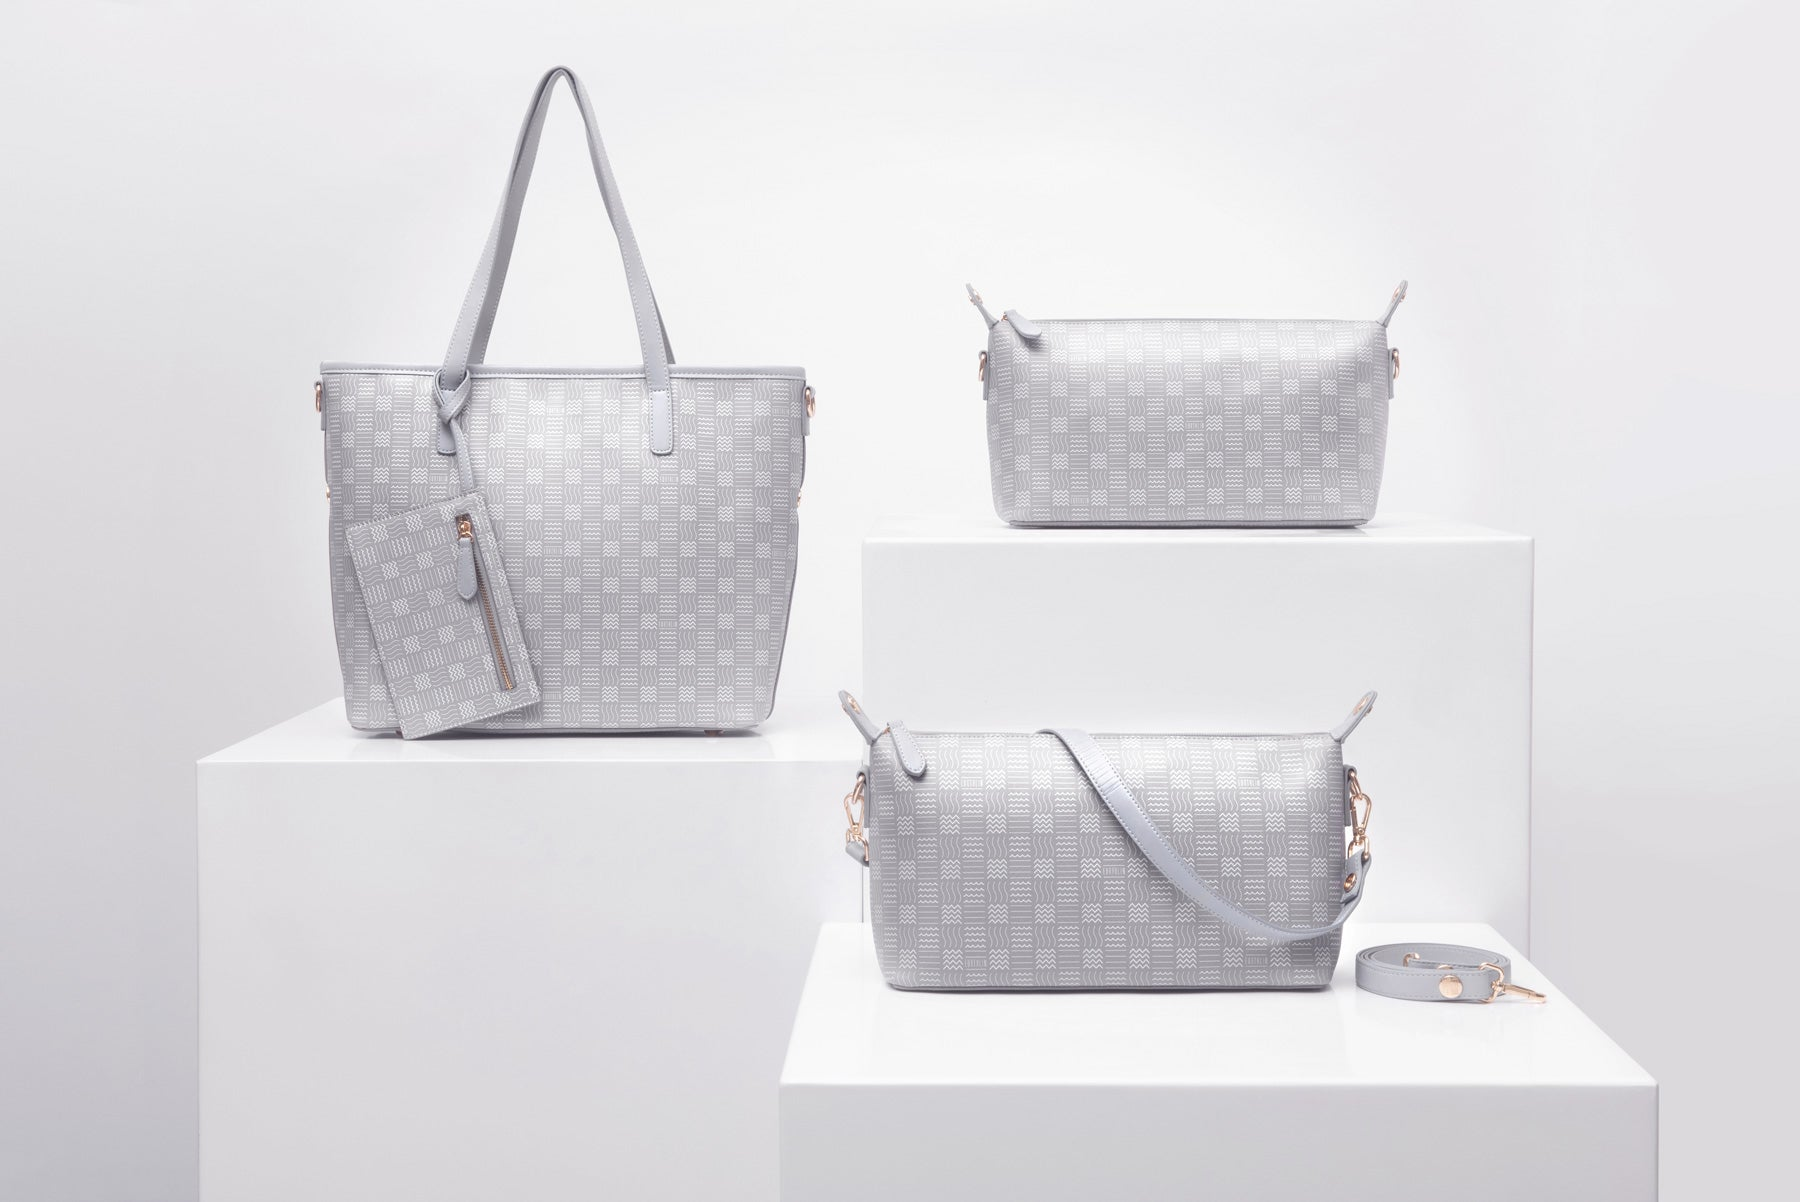 The Terra collection: Terra tote, crossbody bag and shoulder bag